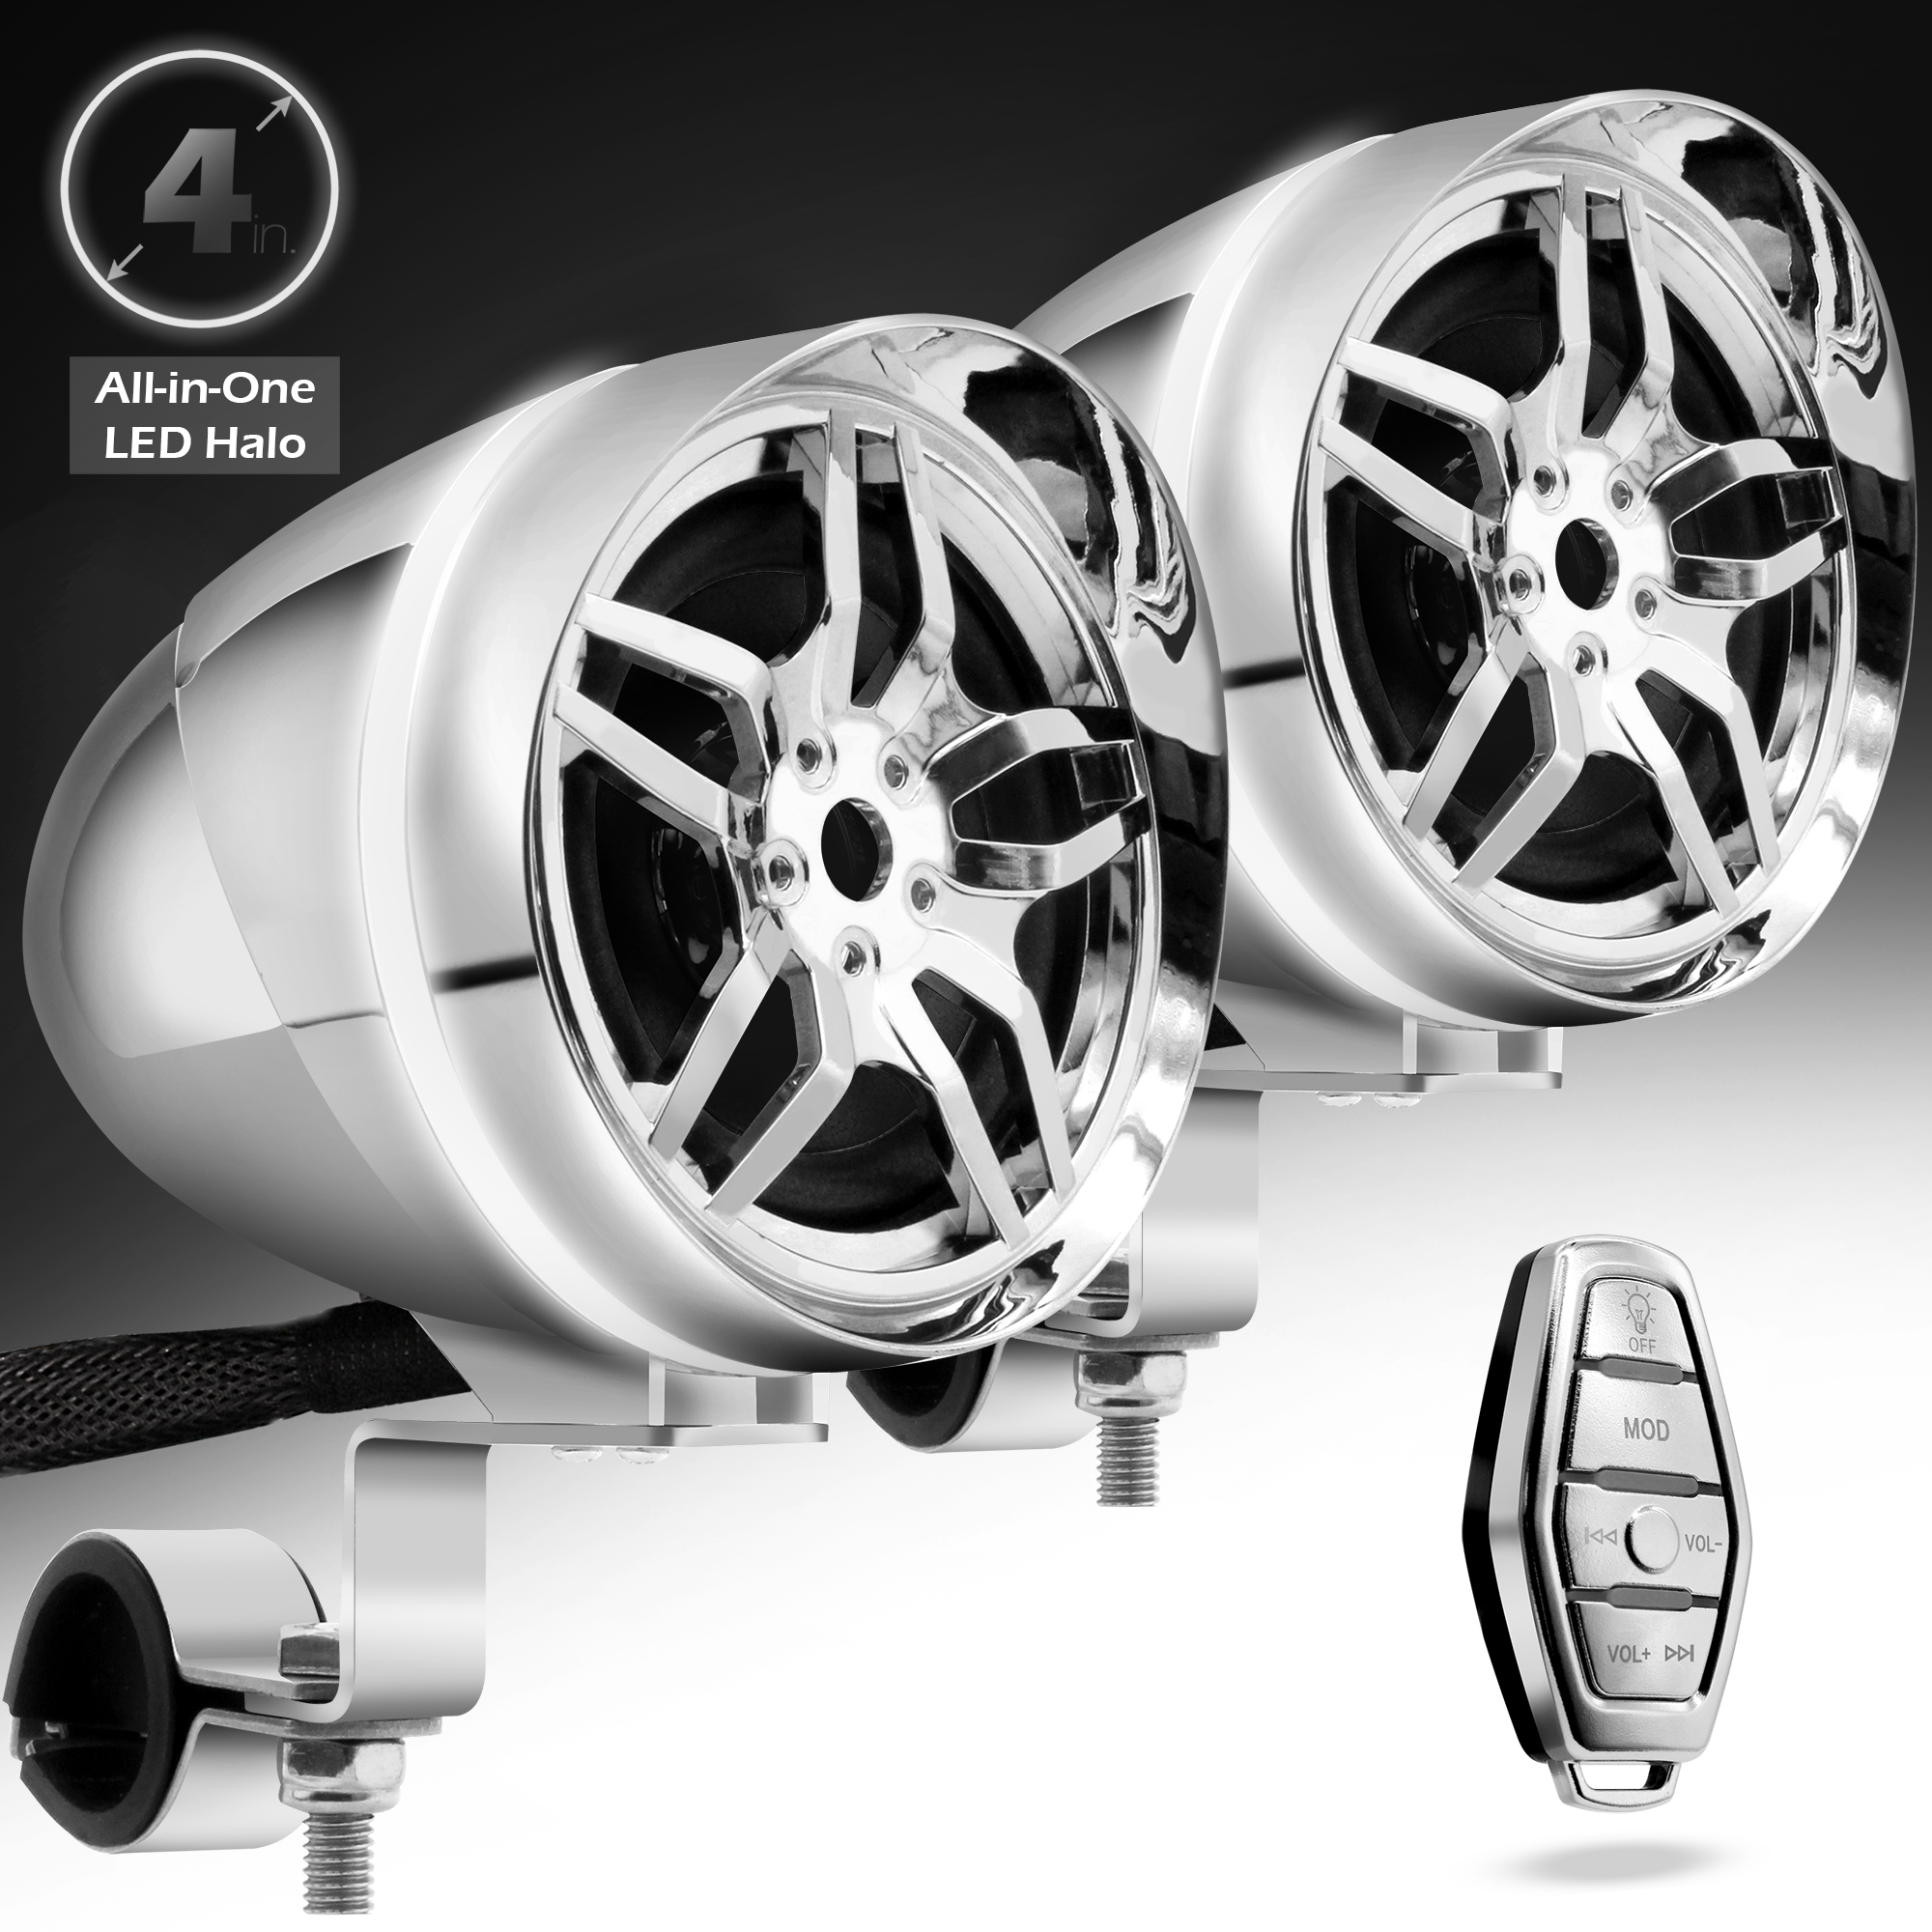 GoHawk AR4-Halo LED 4 in. All-in-One Bluetooth Motorcycle Stereo Speakers on